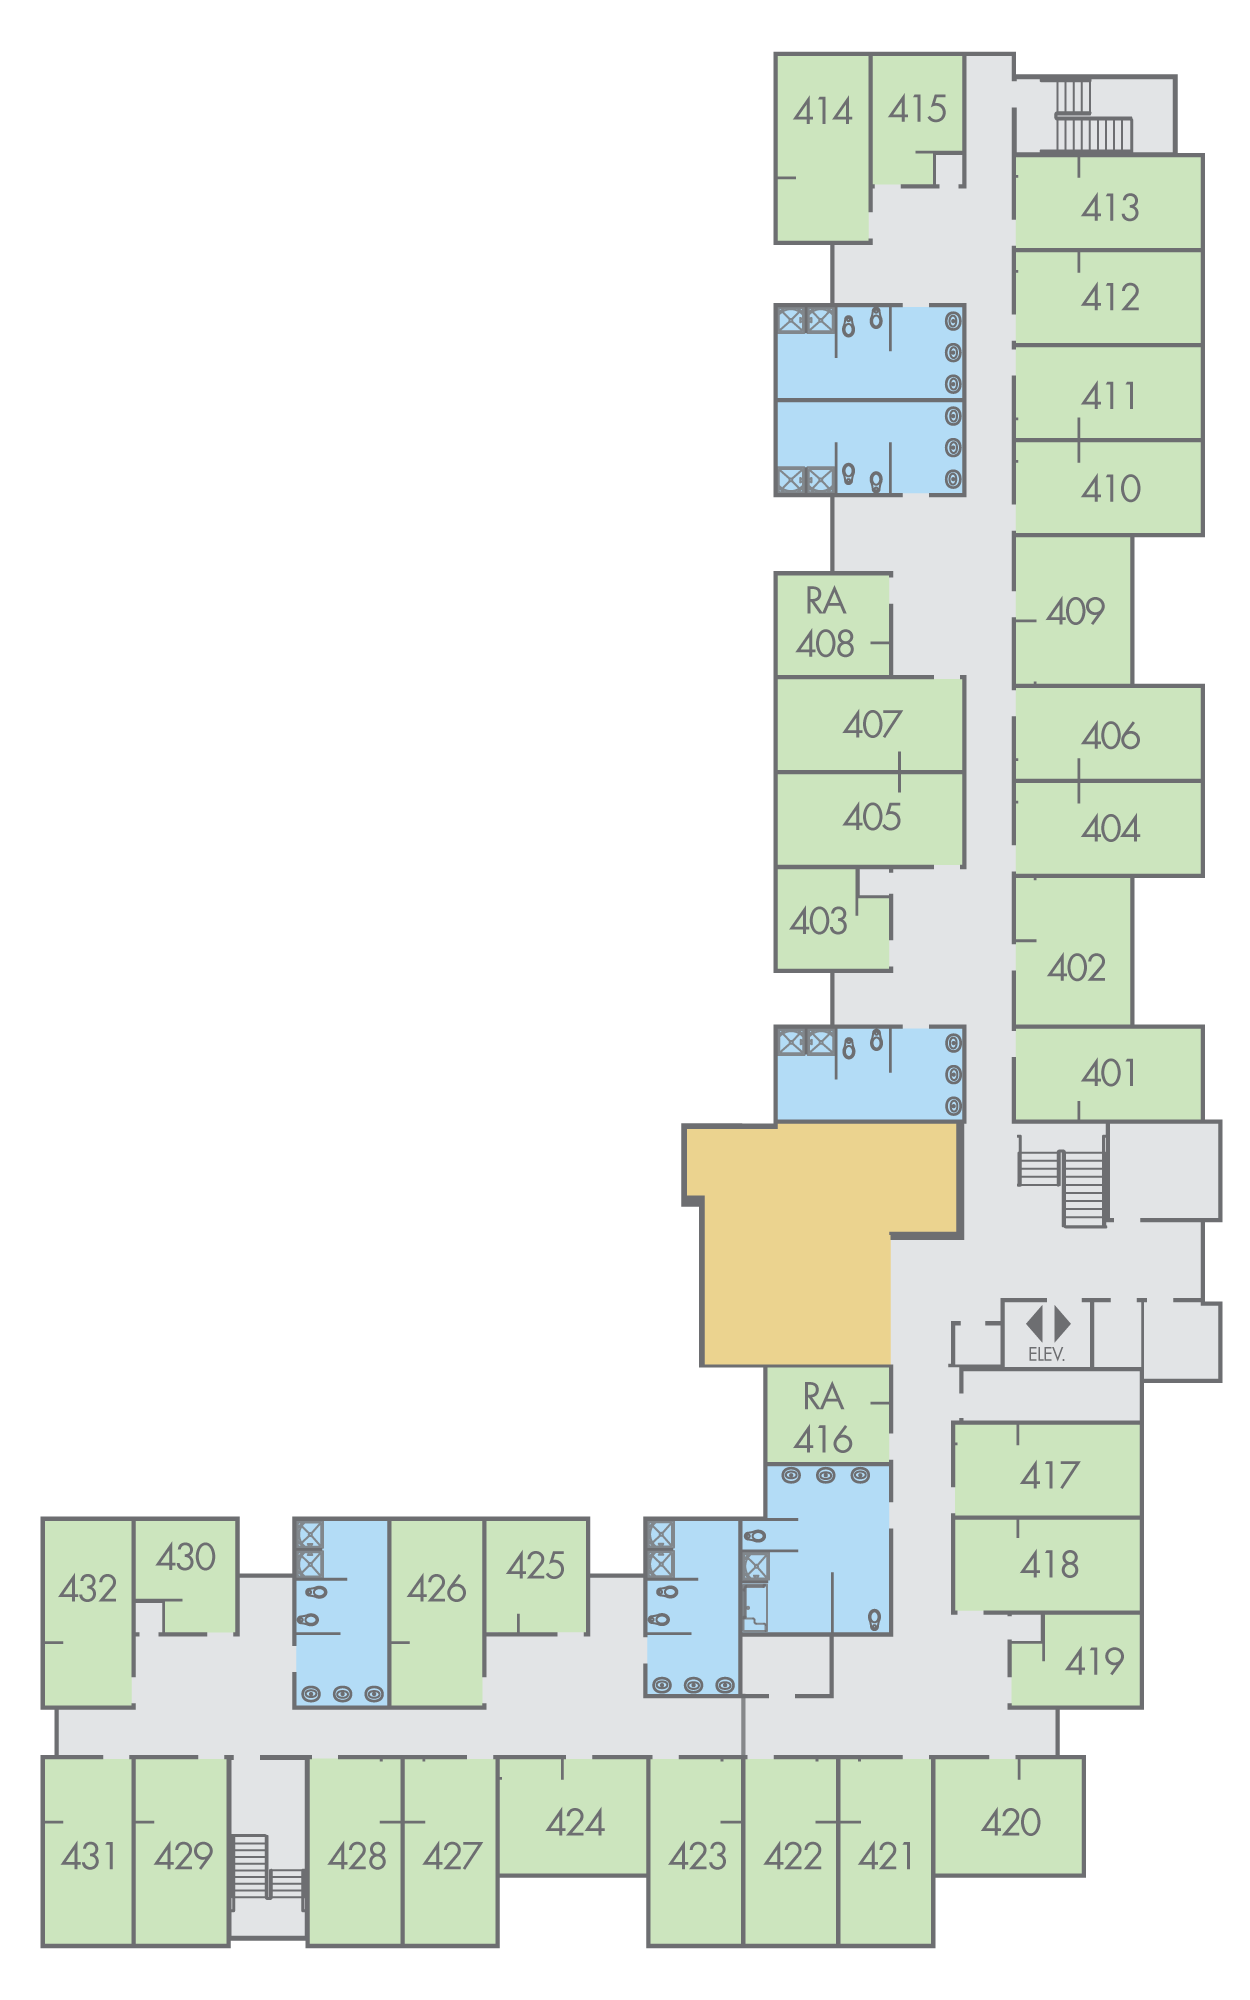 Floor Plan: Wall Hall, Fourth Floor